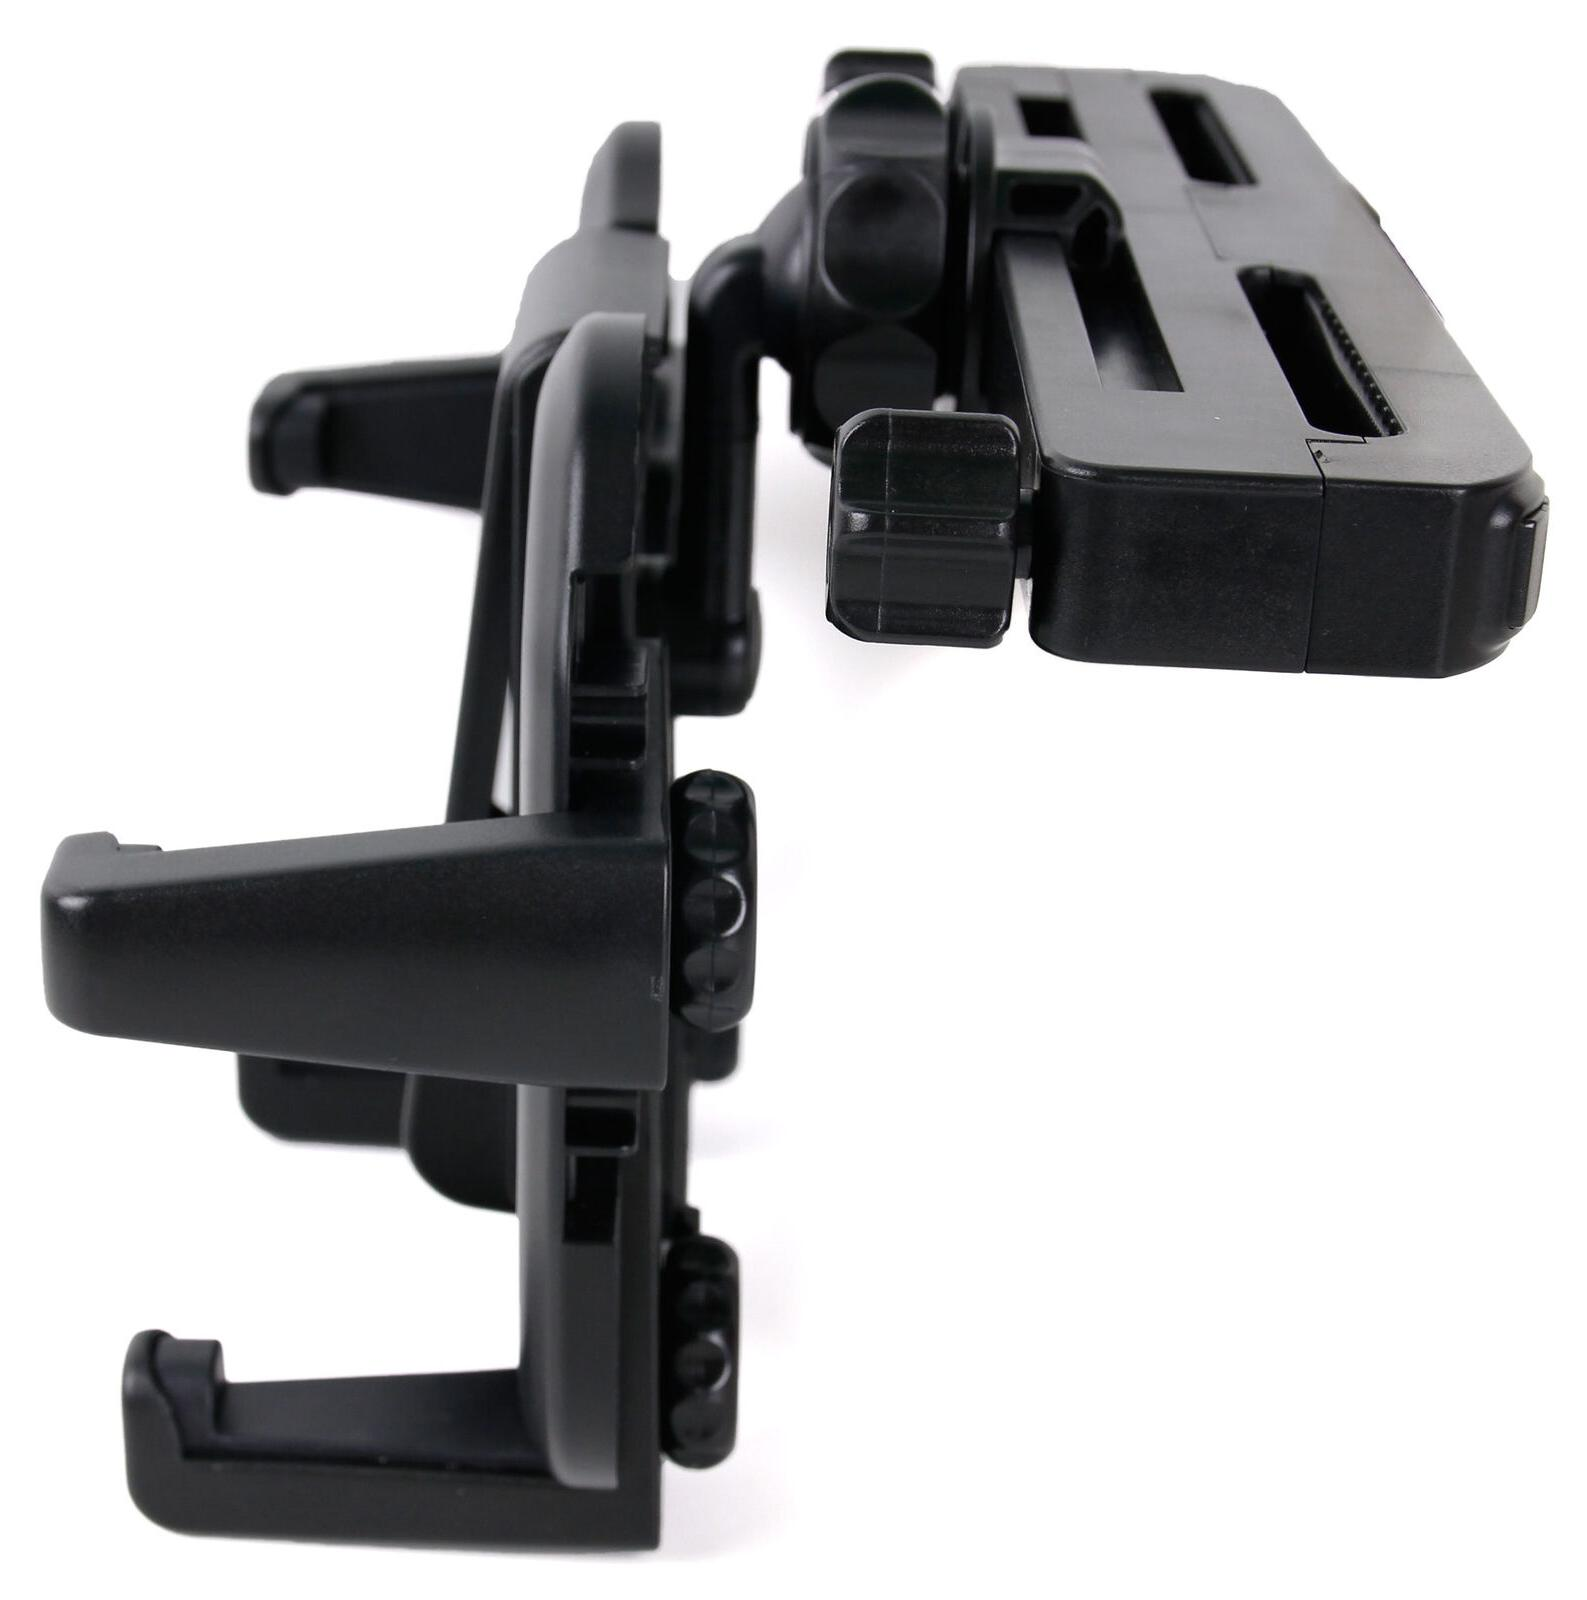 In-Car Headrest Mount/Tray For Dual 906 Portable